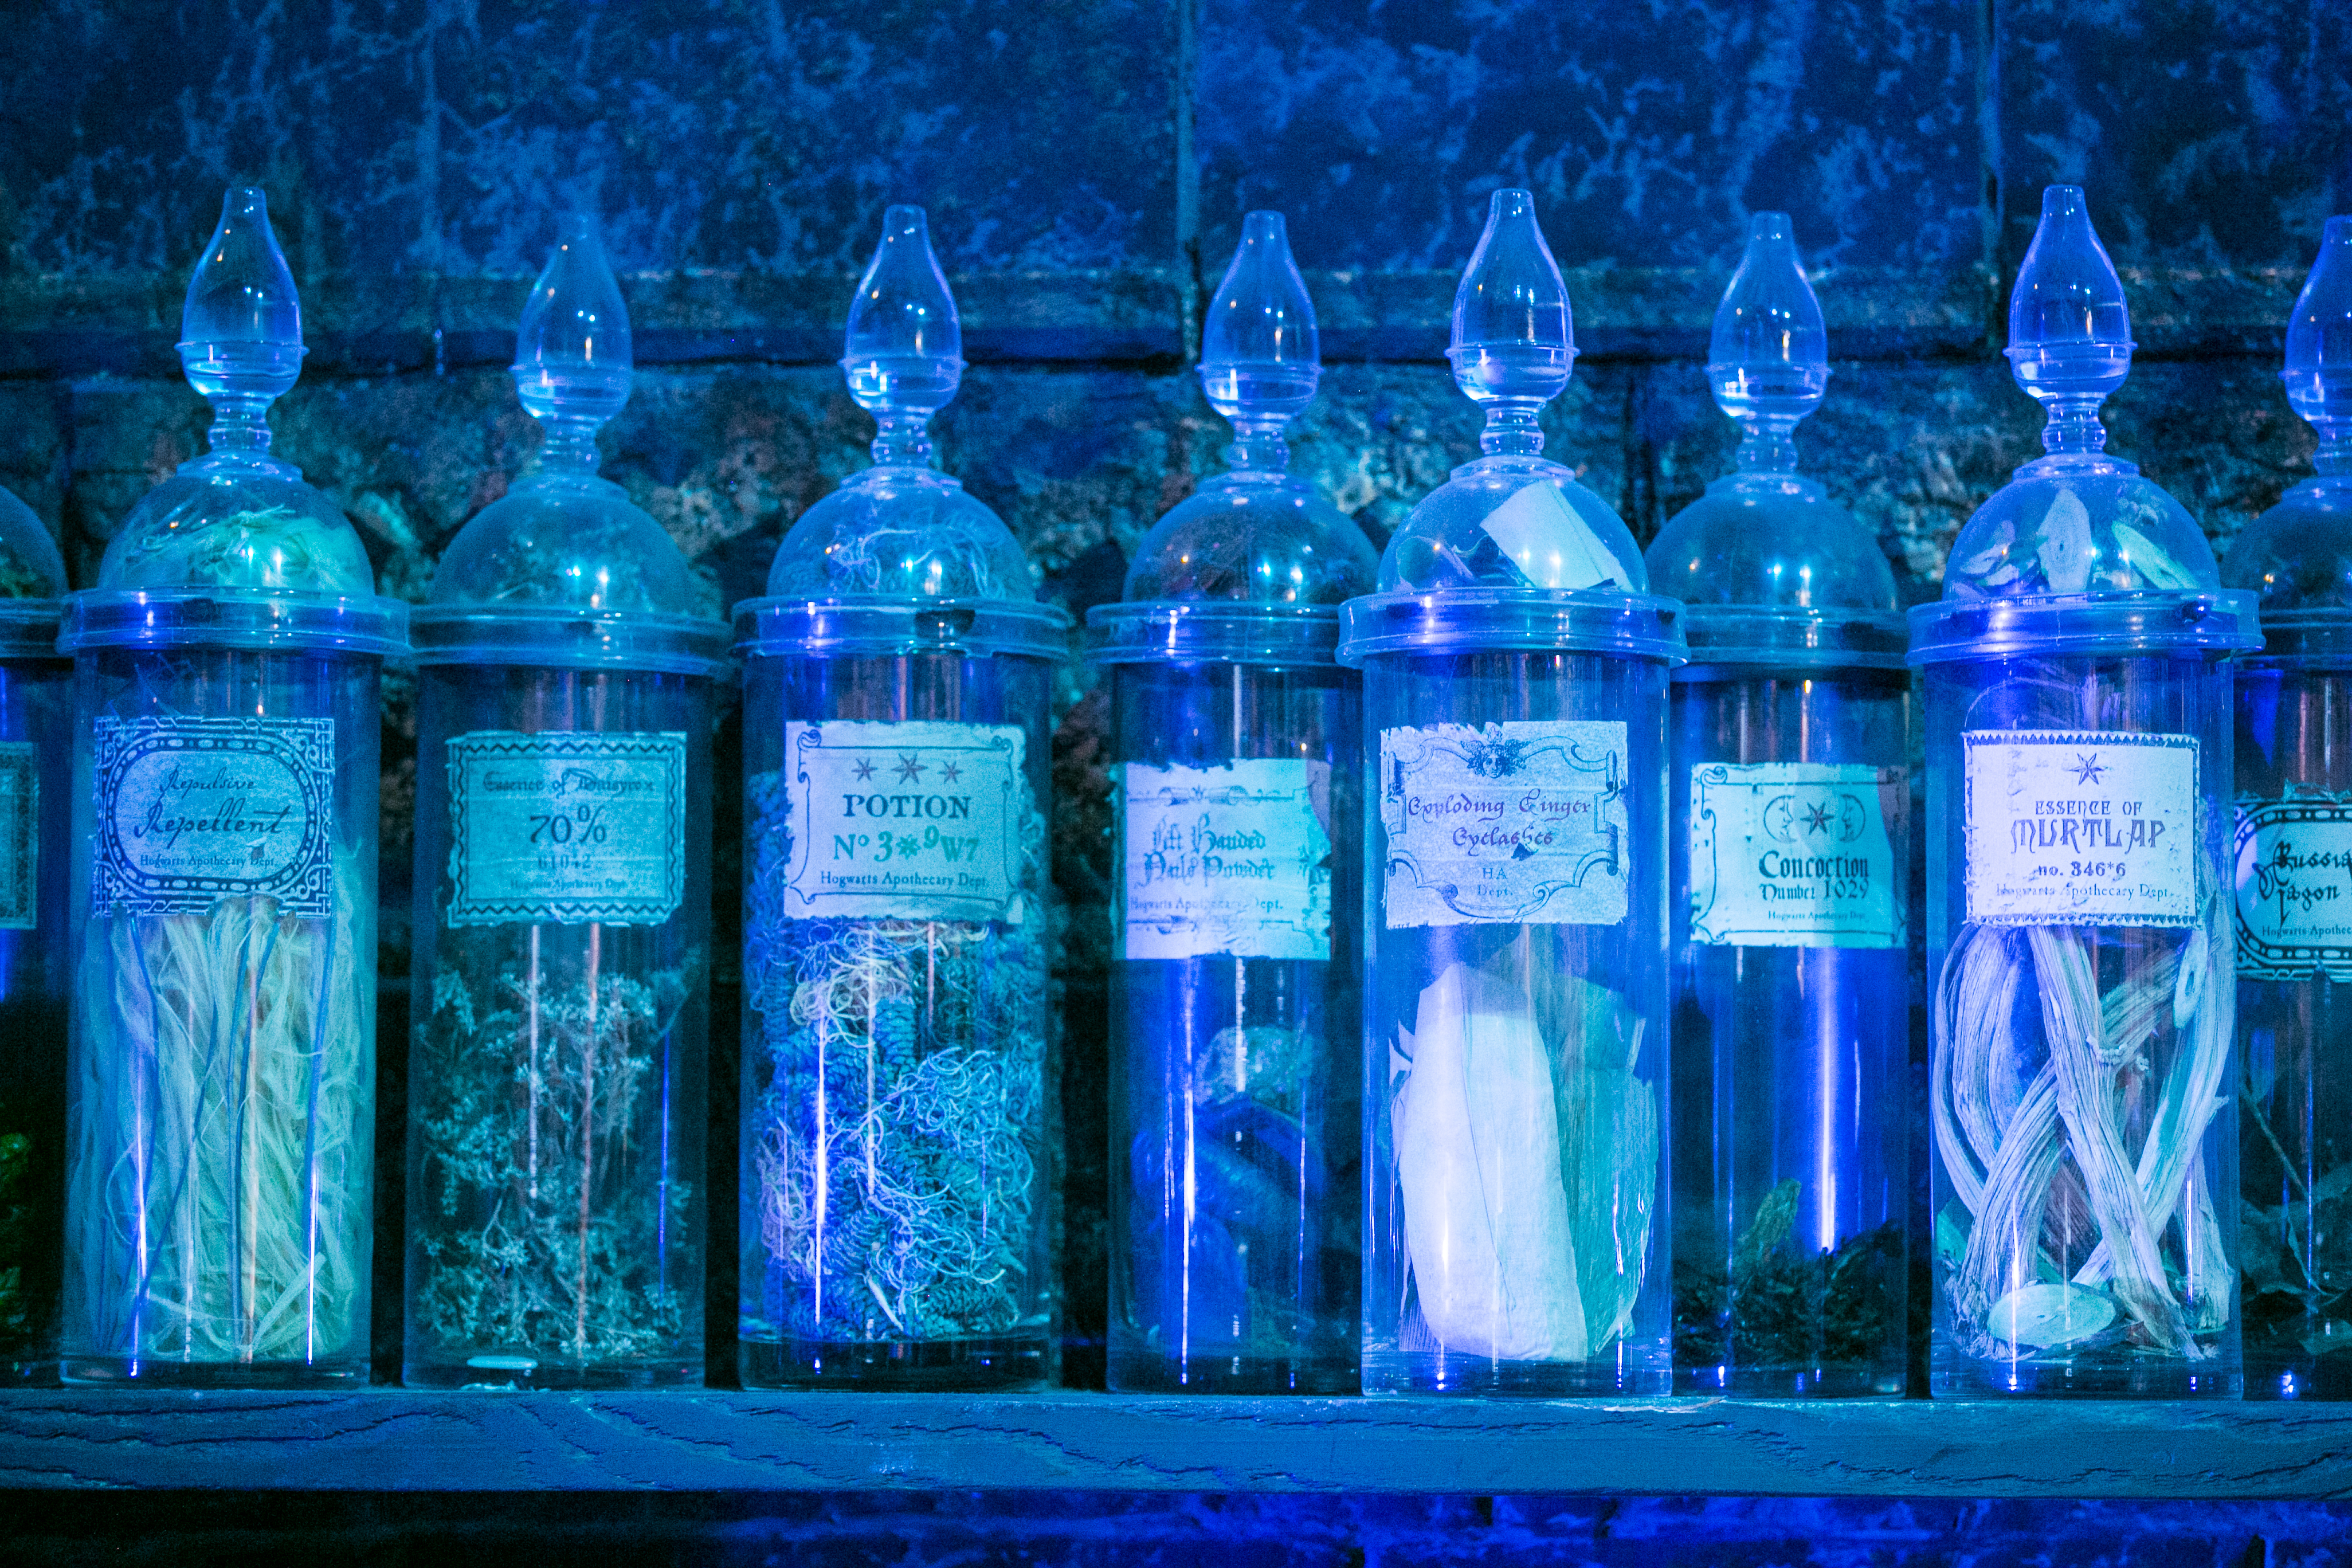 harry-potter-studio-tour-potions-details-potion-bottle